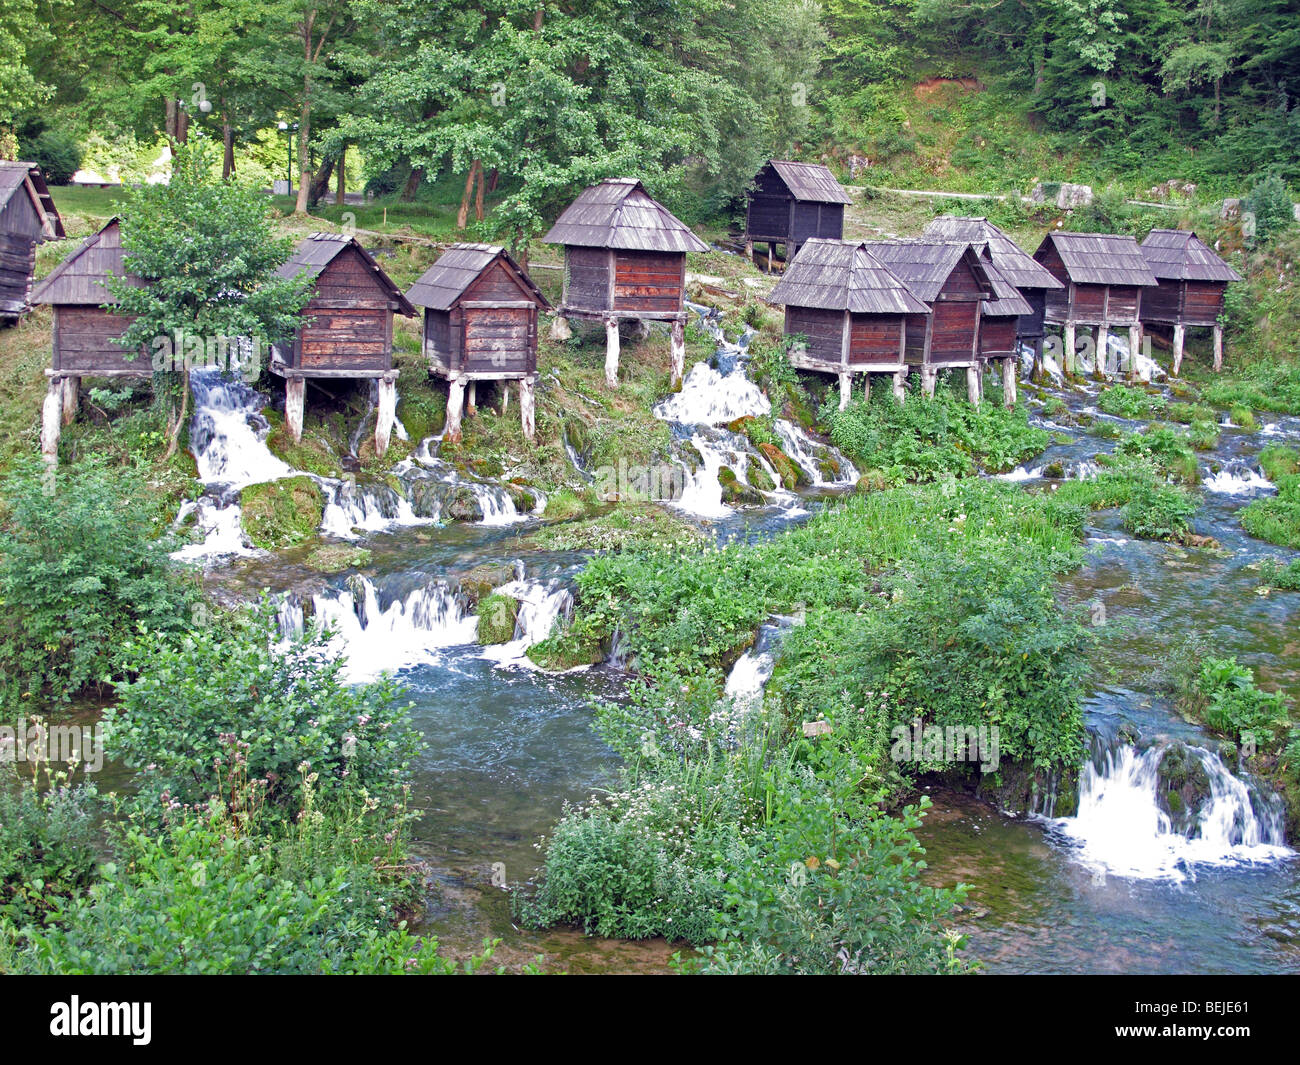 Bosnia and Herzegovina, district of Jajce town. Watermills on the Pliva river. - Stock Image